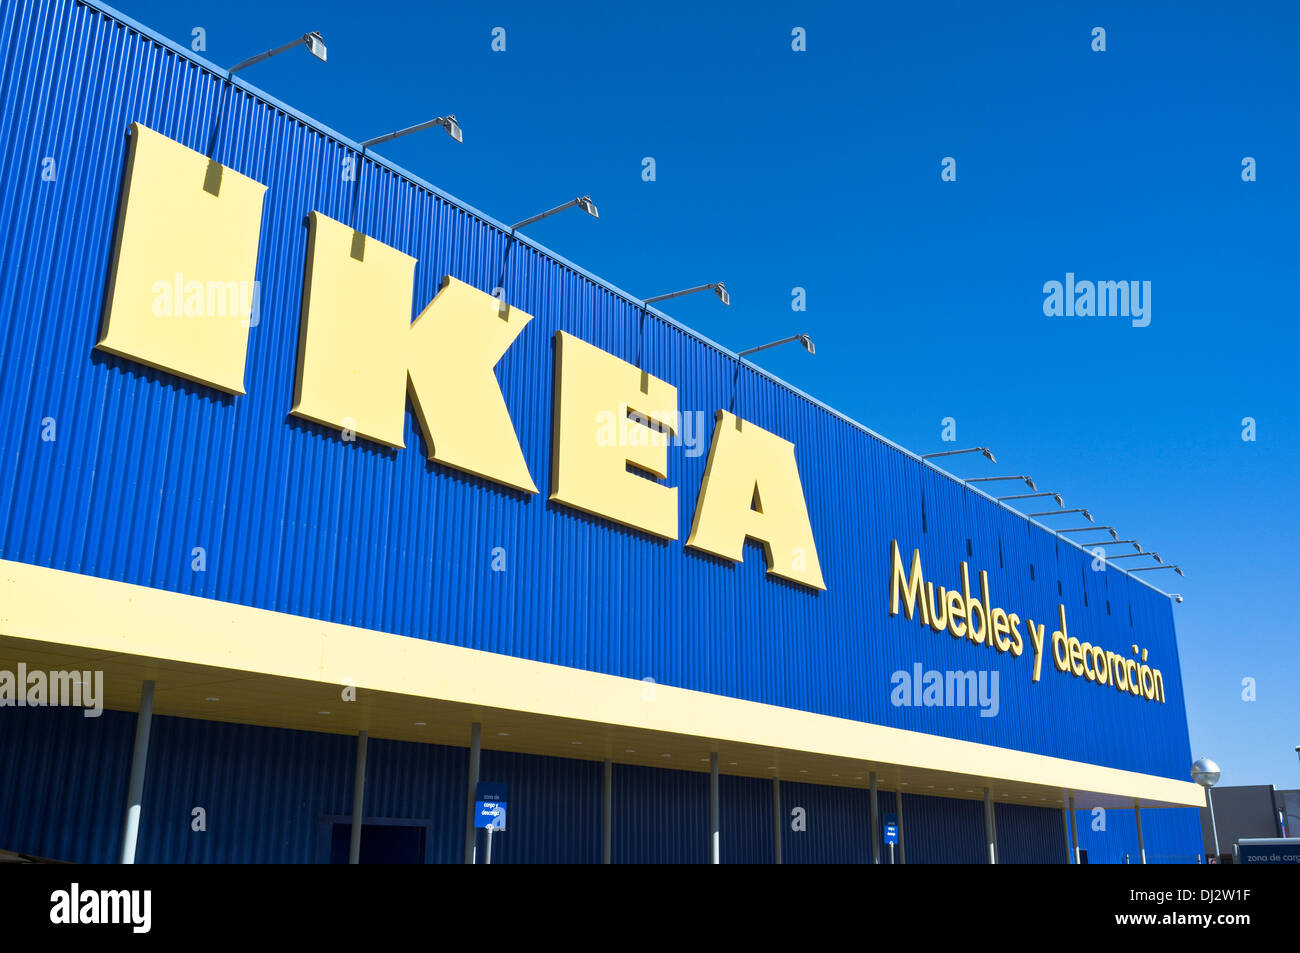 Now at IKEA, you can shop online from any device and decide where and how you want to receive your order. You can return articles purchased at bestkfilessz6.ga to any of our stores (except for IKEA Temporary Madrid) or delivery points within a period of days, accompanied by your purchase receipt. Refunds.